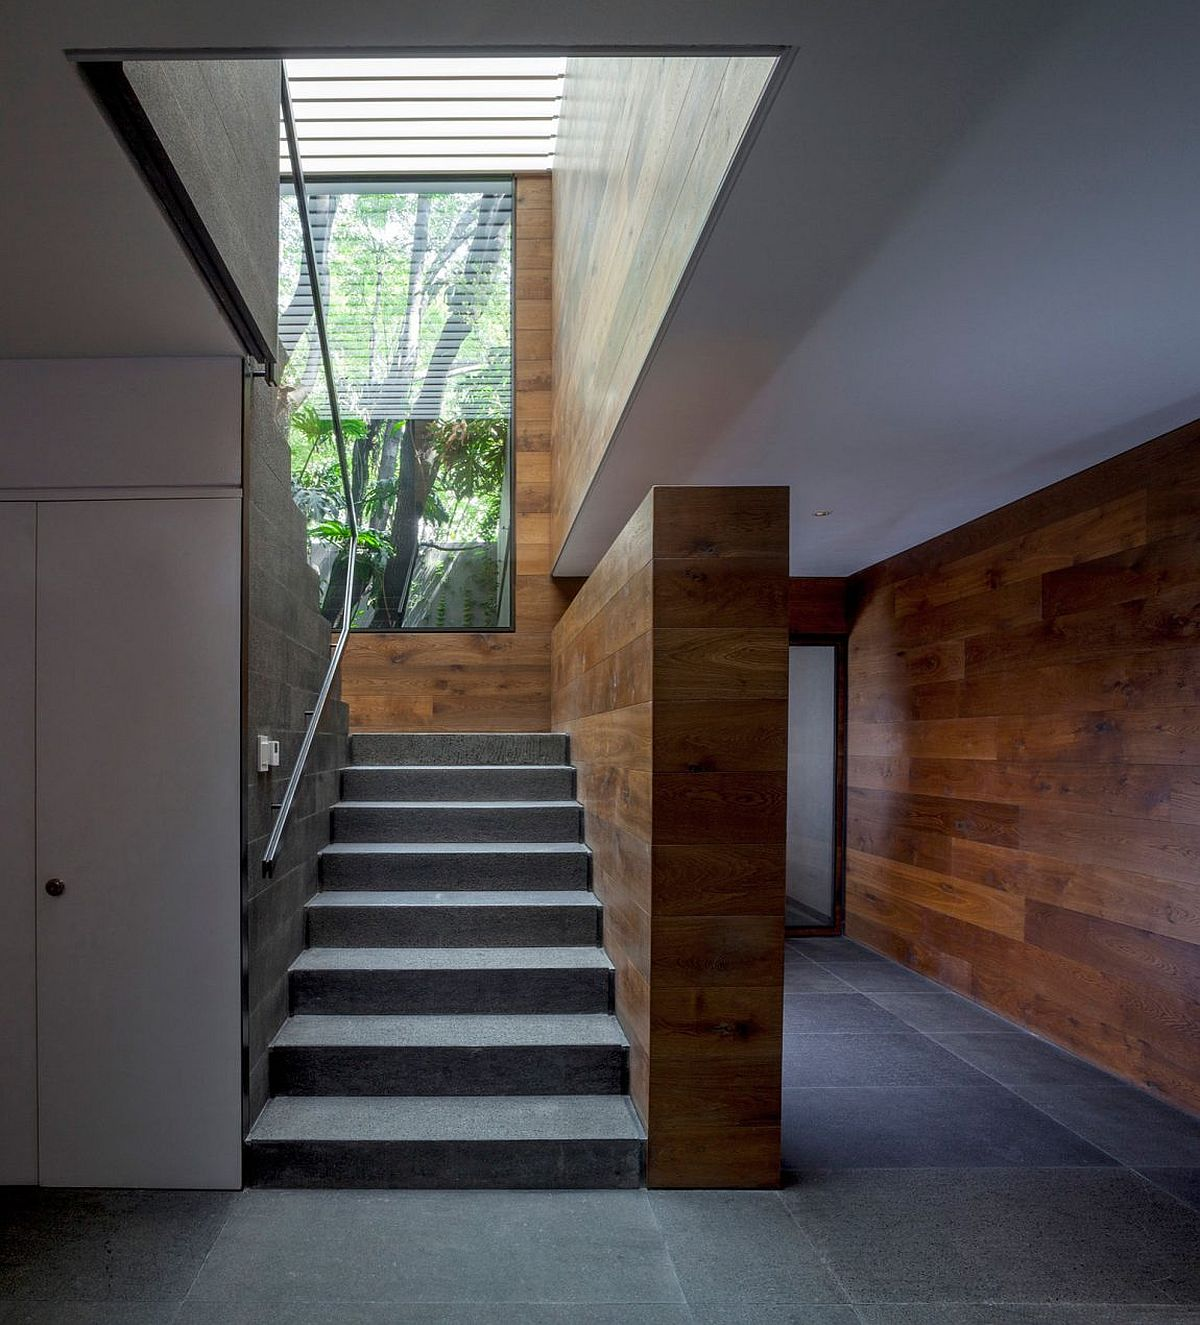 Stairwell-of-the-home-also-ushers-in-natural-light